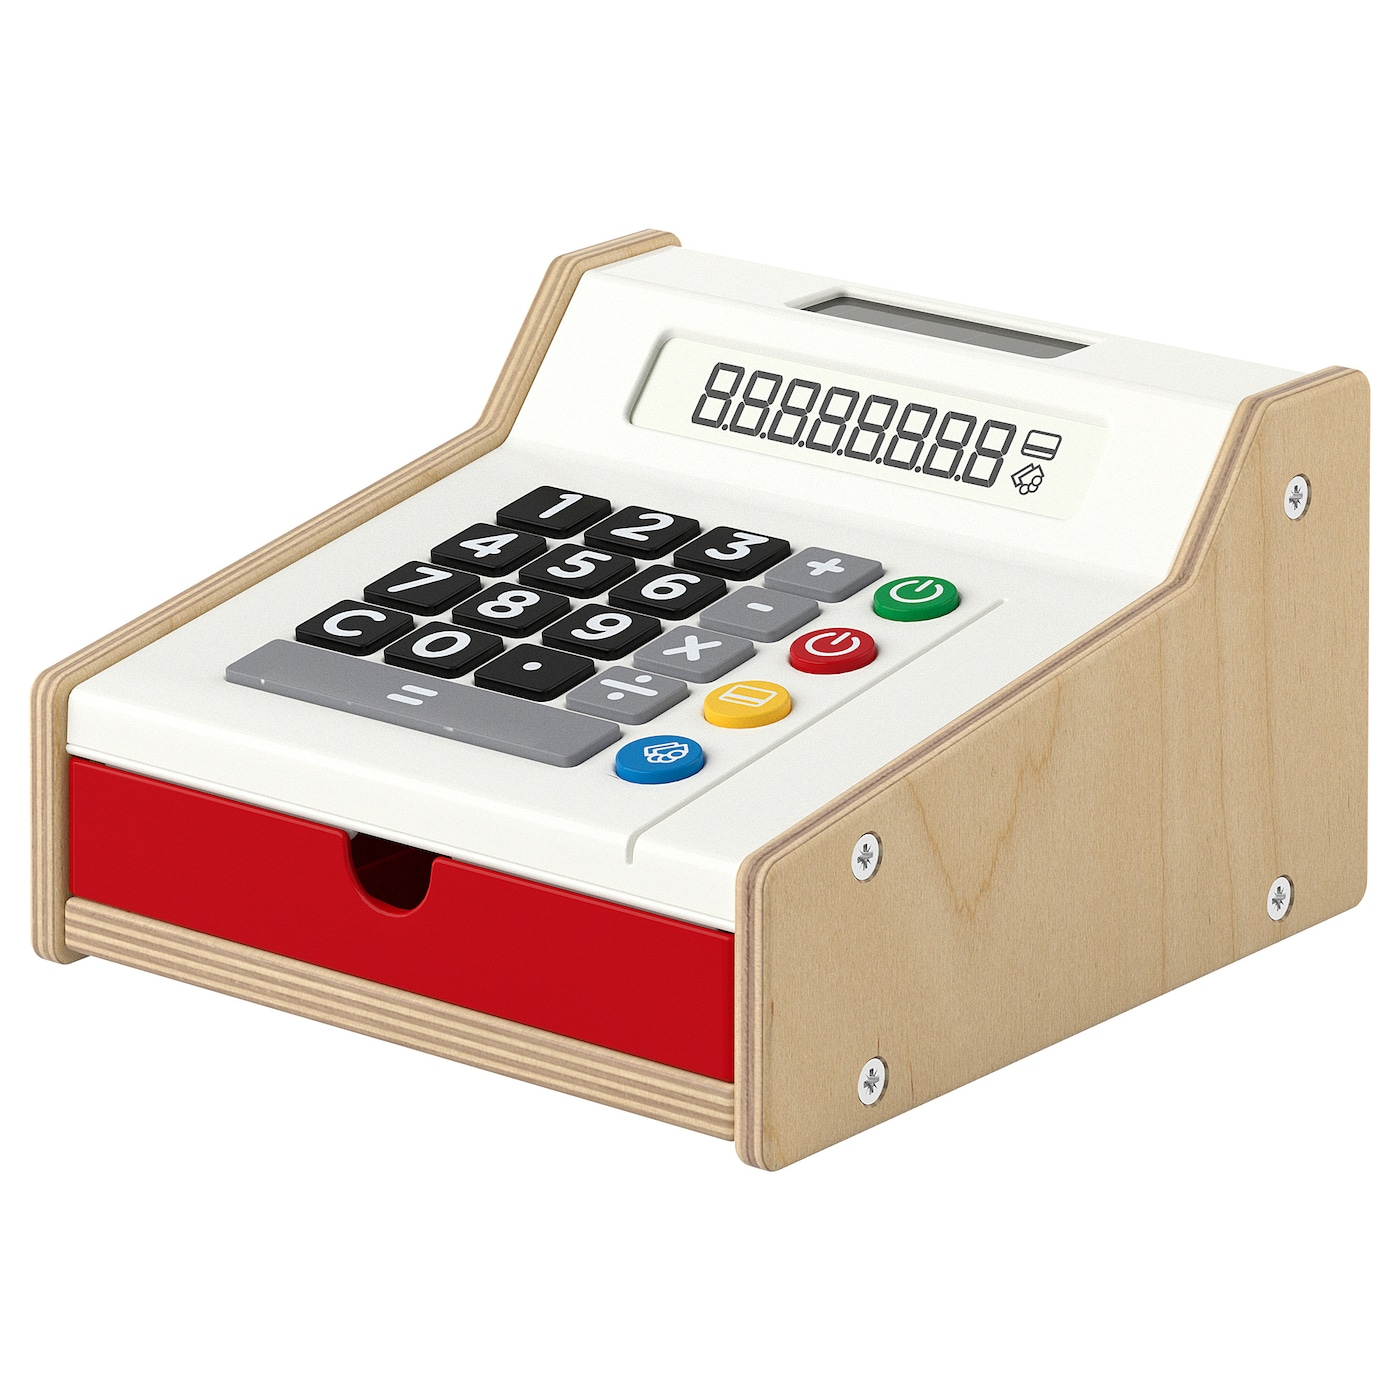 IKEA DUKTIG toy cash register No need to change batteries as the calculator runs on solar cells.